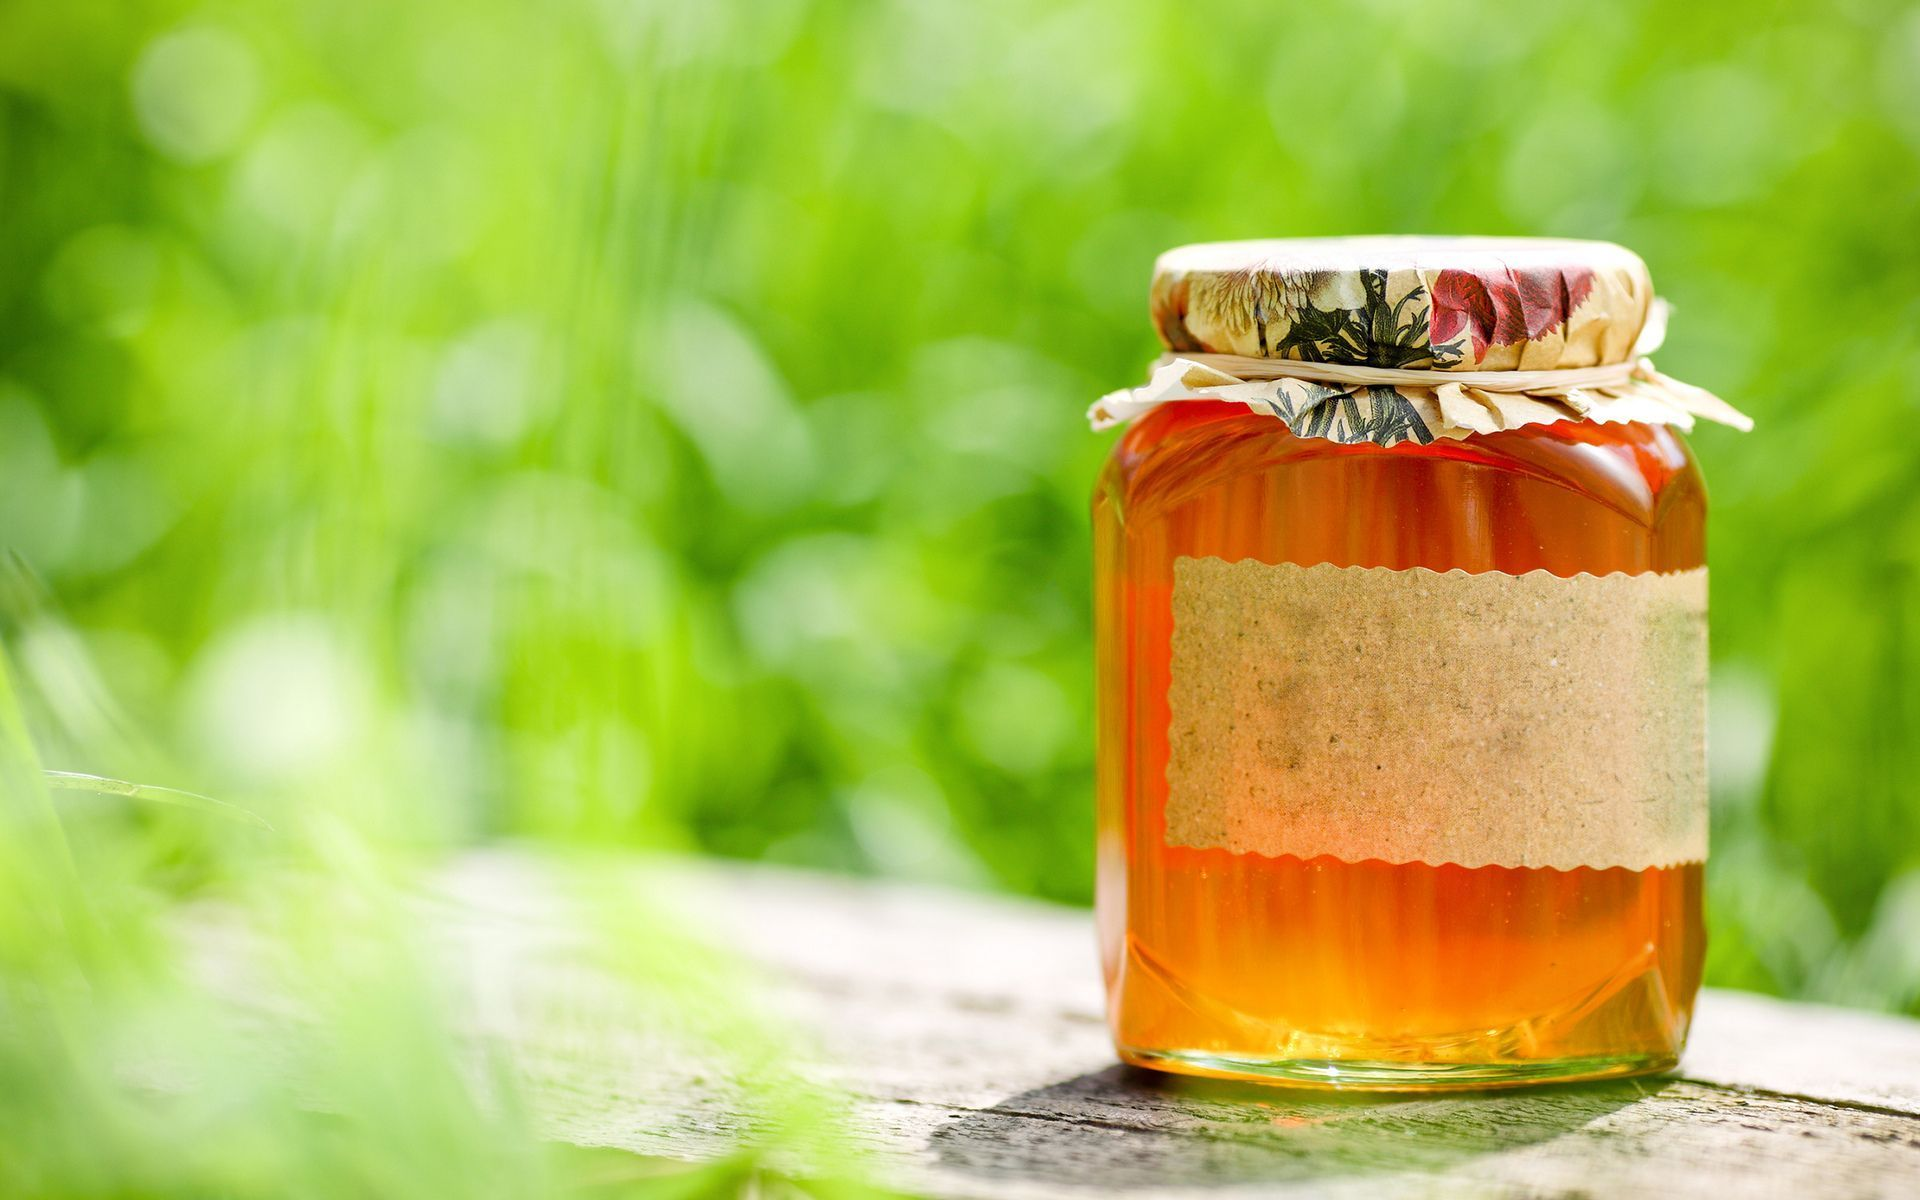 Food-honey-gold-macro-still-life-jar-bee_1920x1200